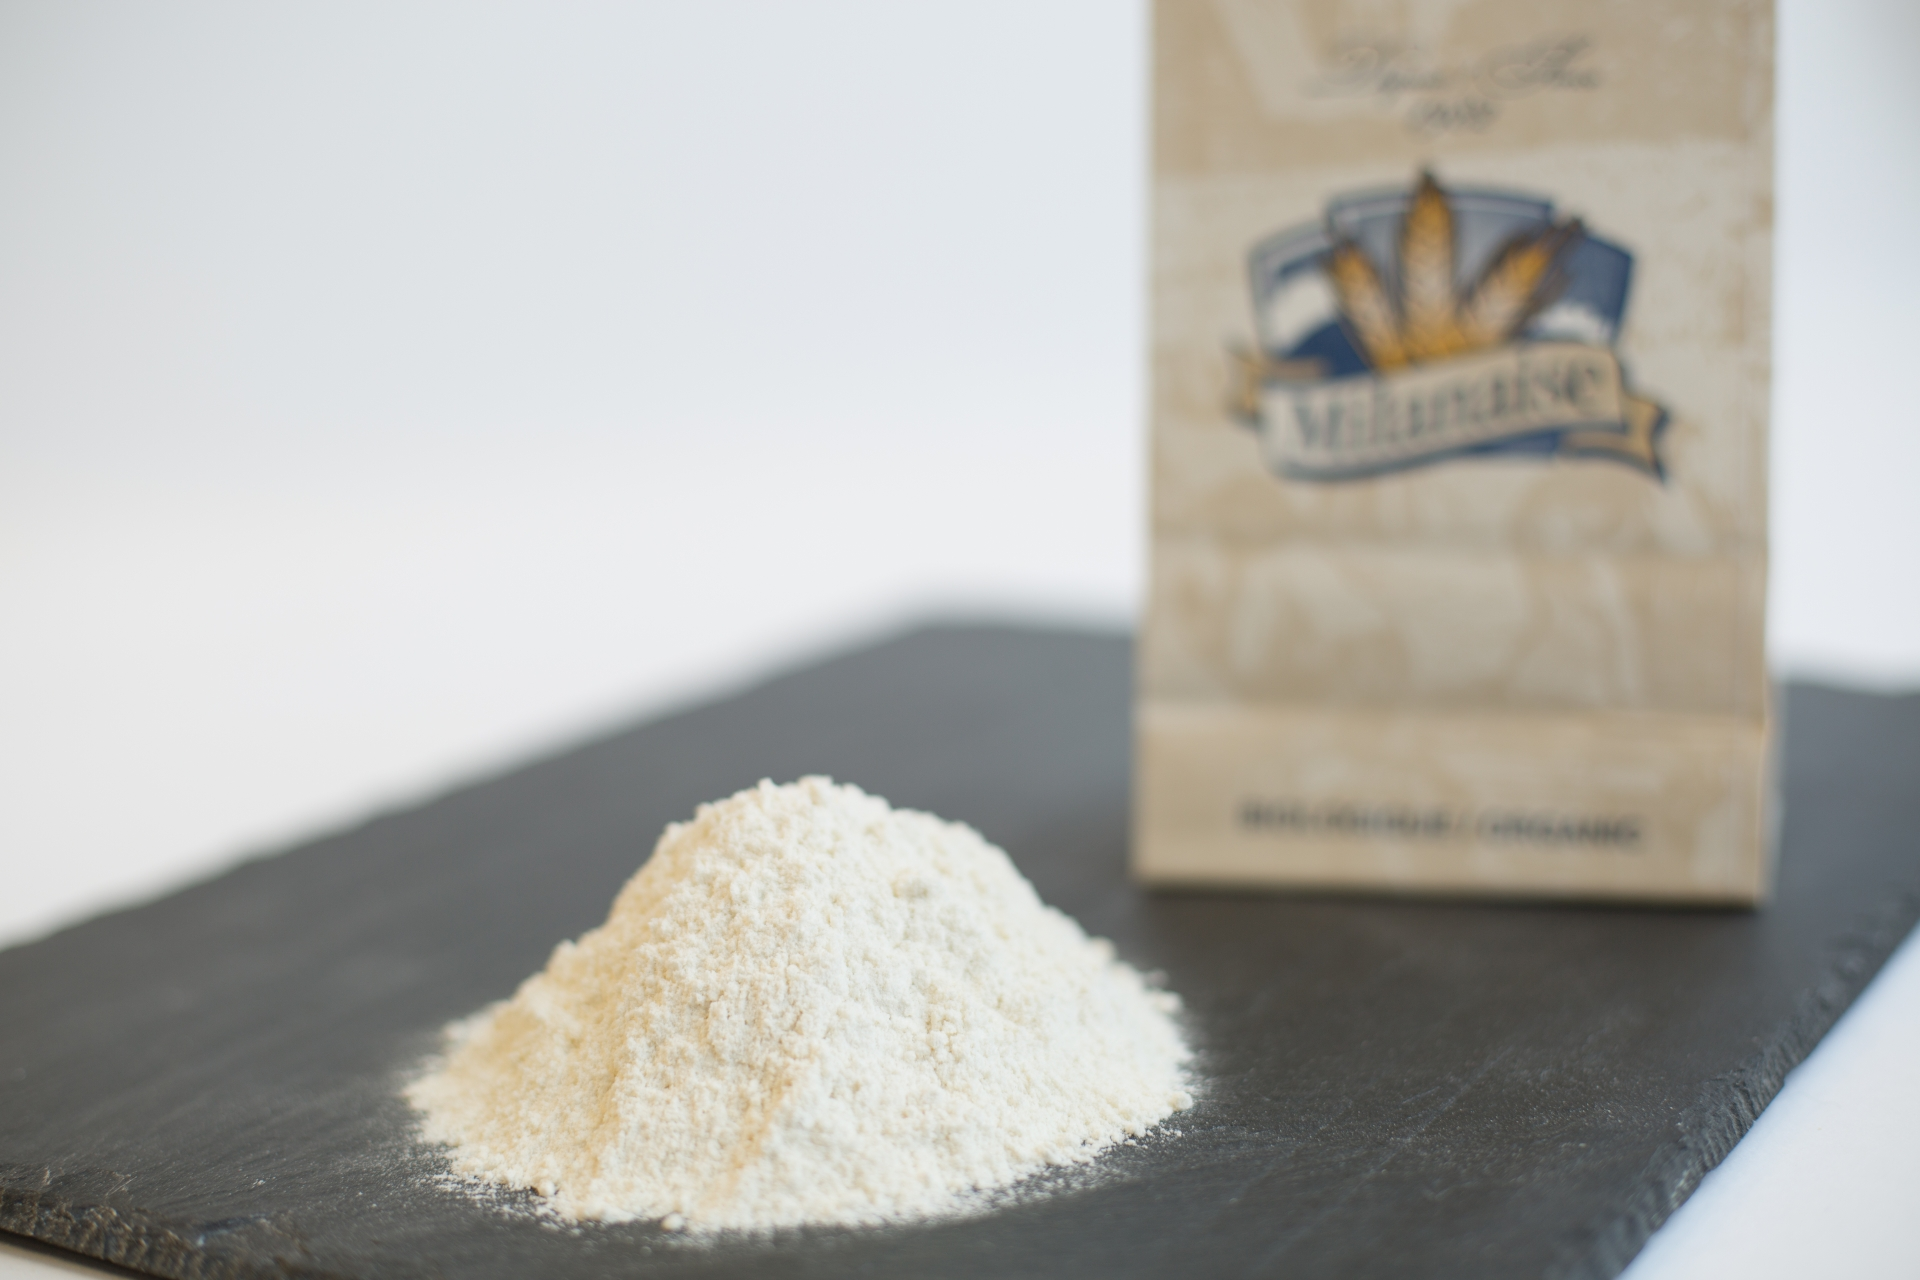 Organic Unbleached White Pastry Flour